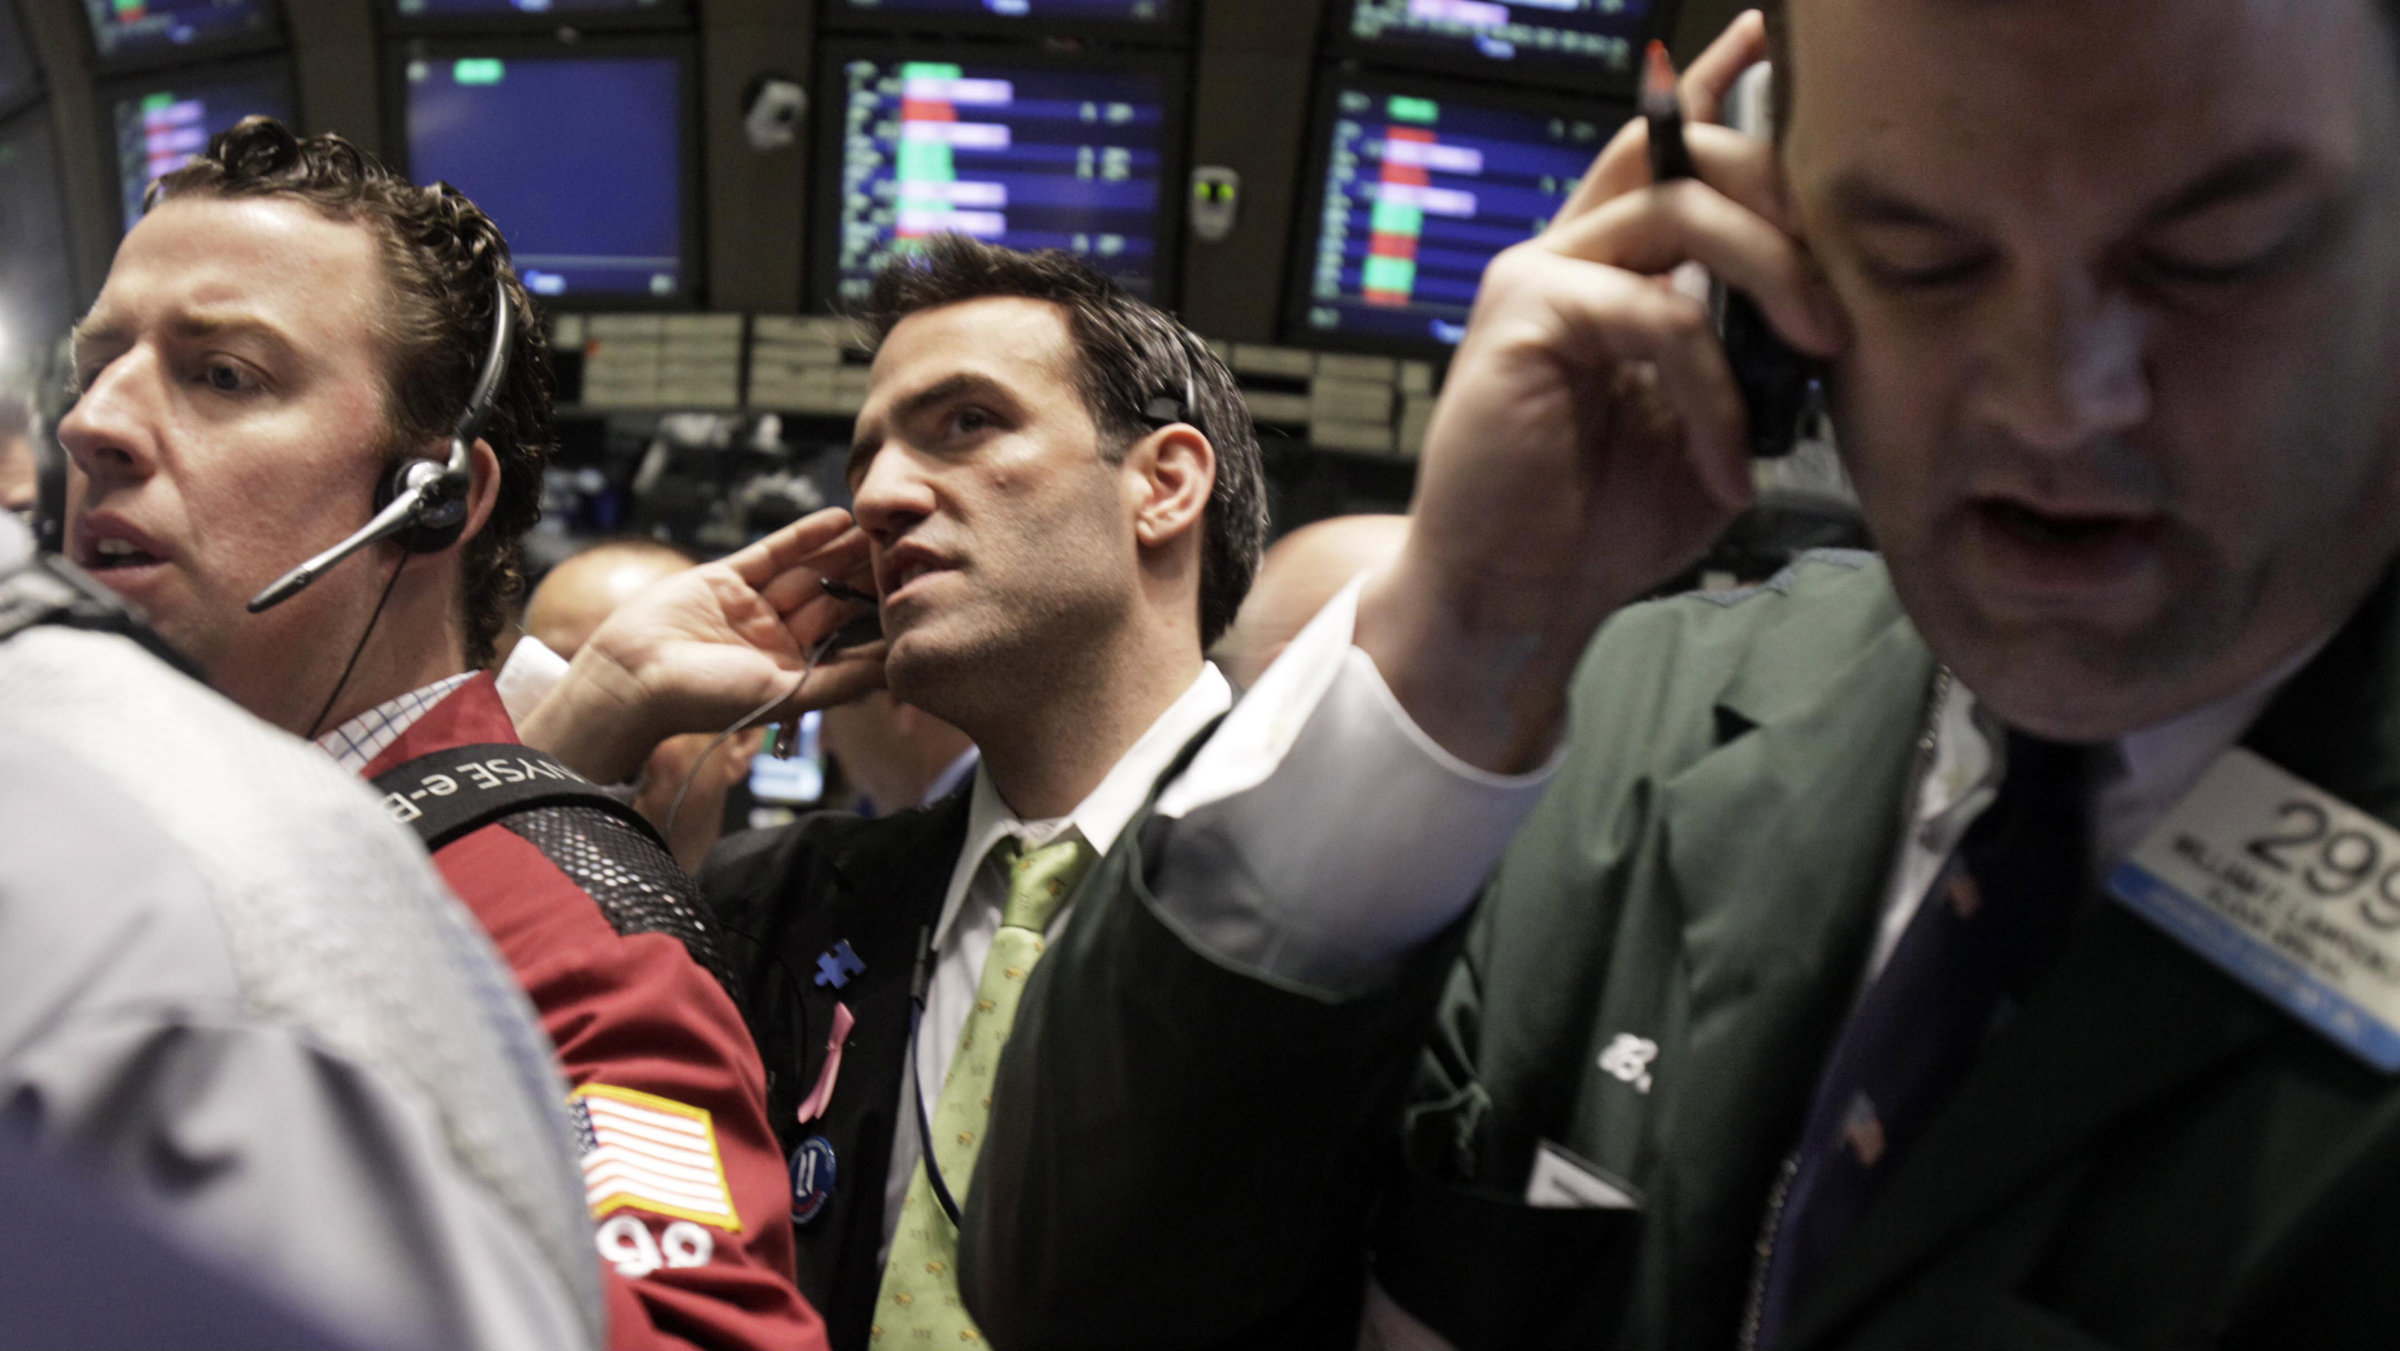 Study says: High-frequency trading has little effect on the average Joe.